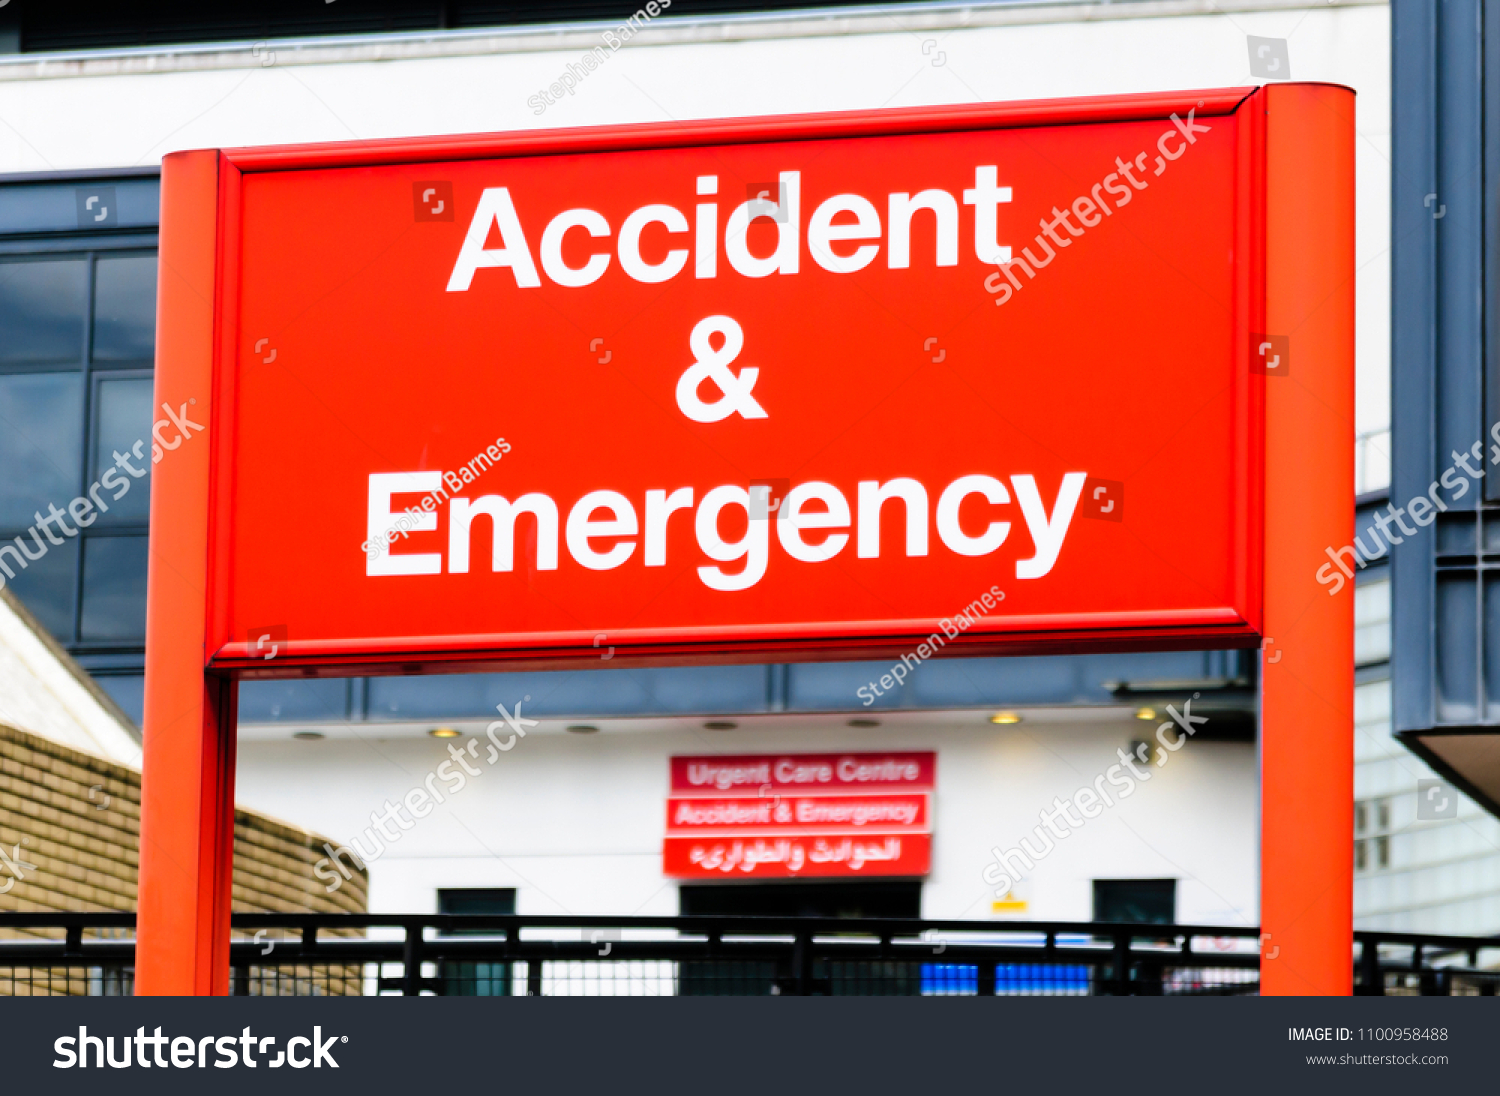 Cash Pool Sparda Bank Accident Emergency Sign Stock Photo Edit Now 1100958488